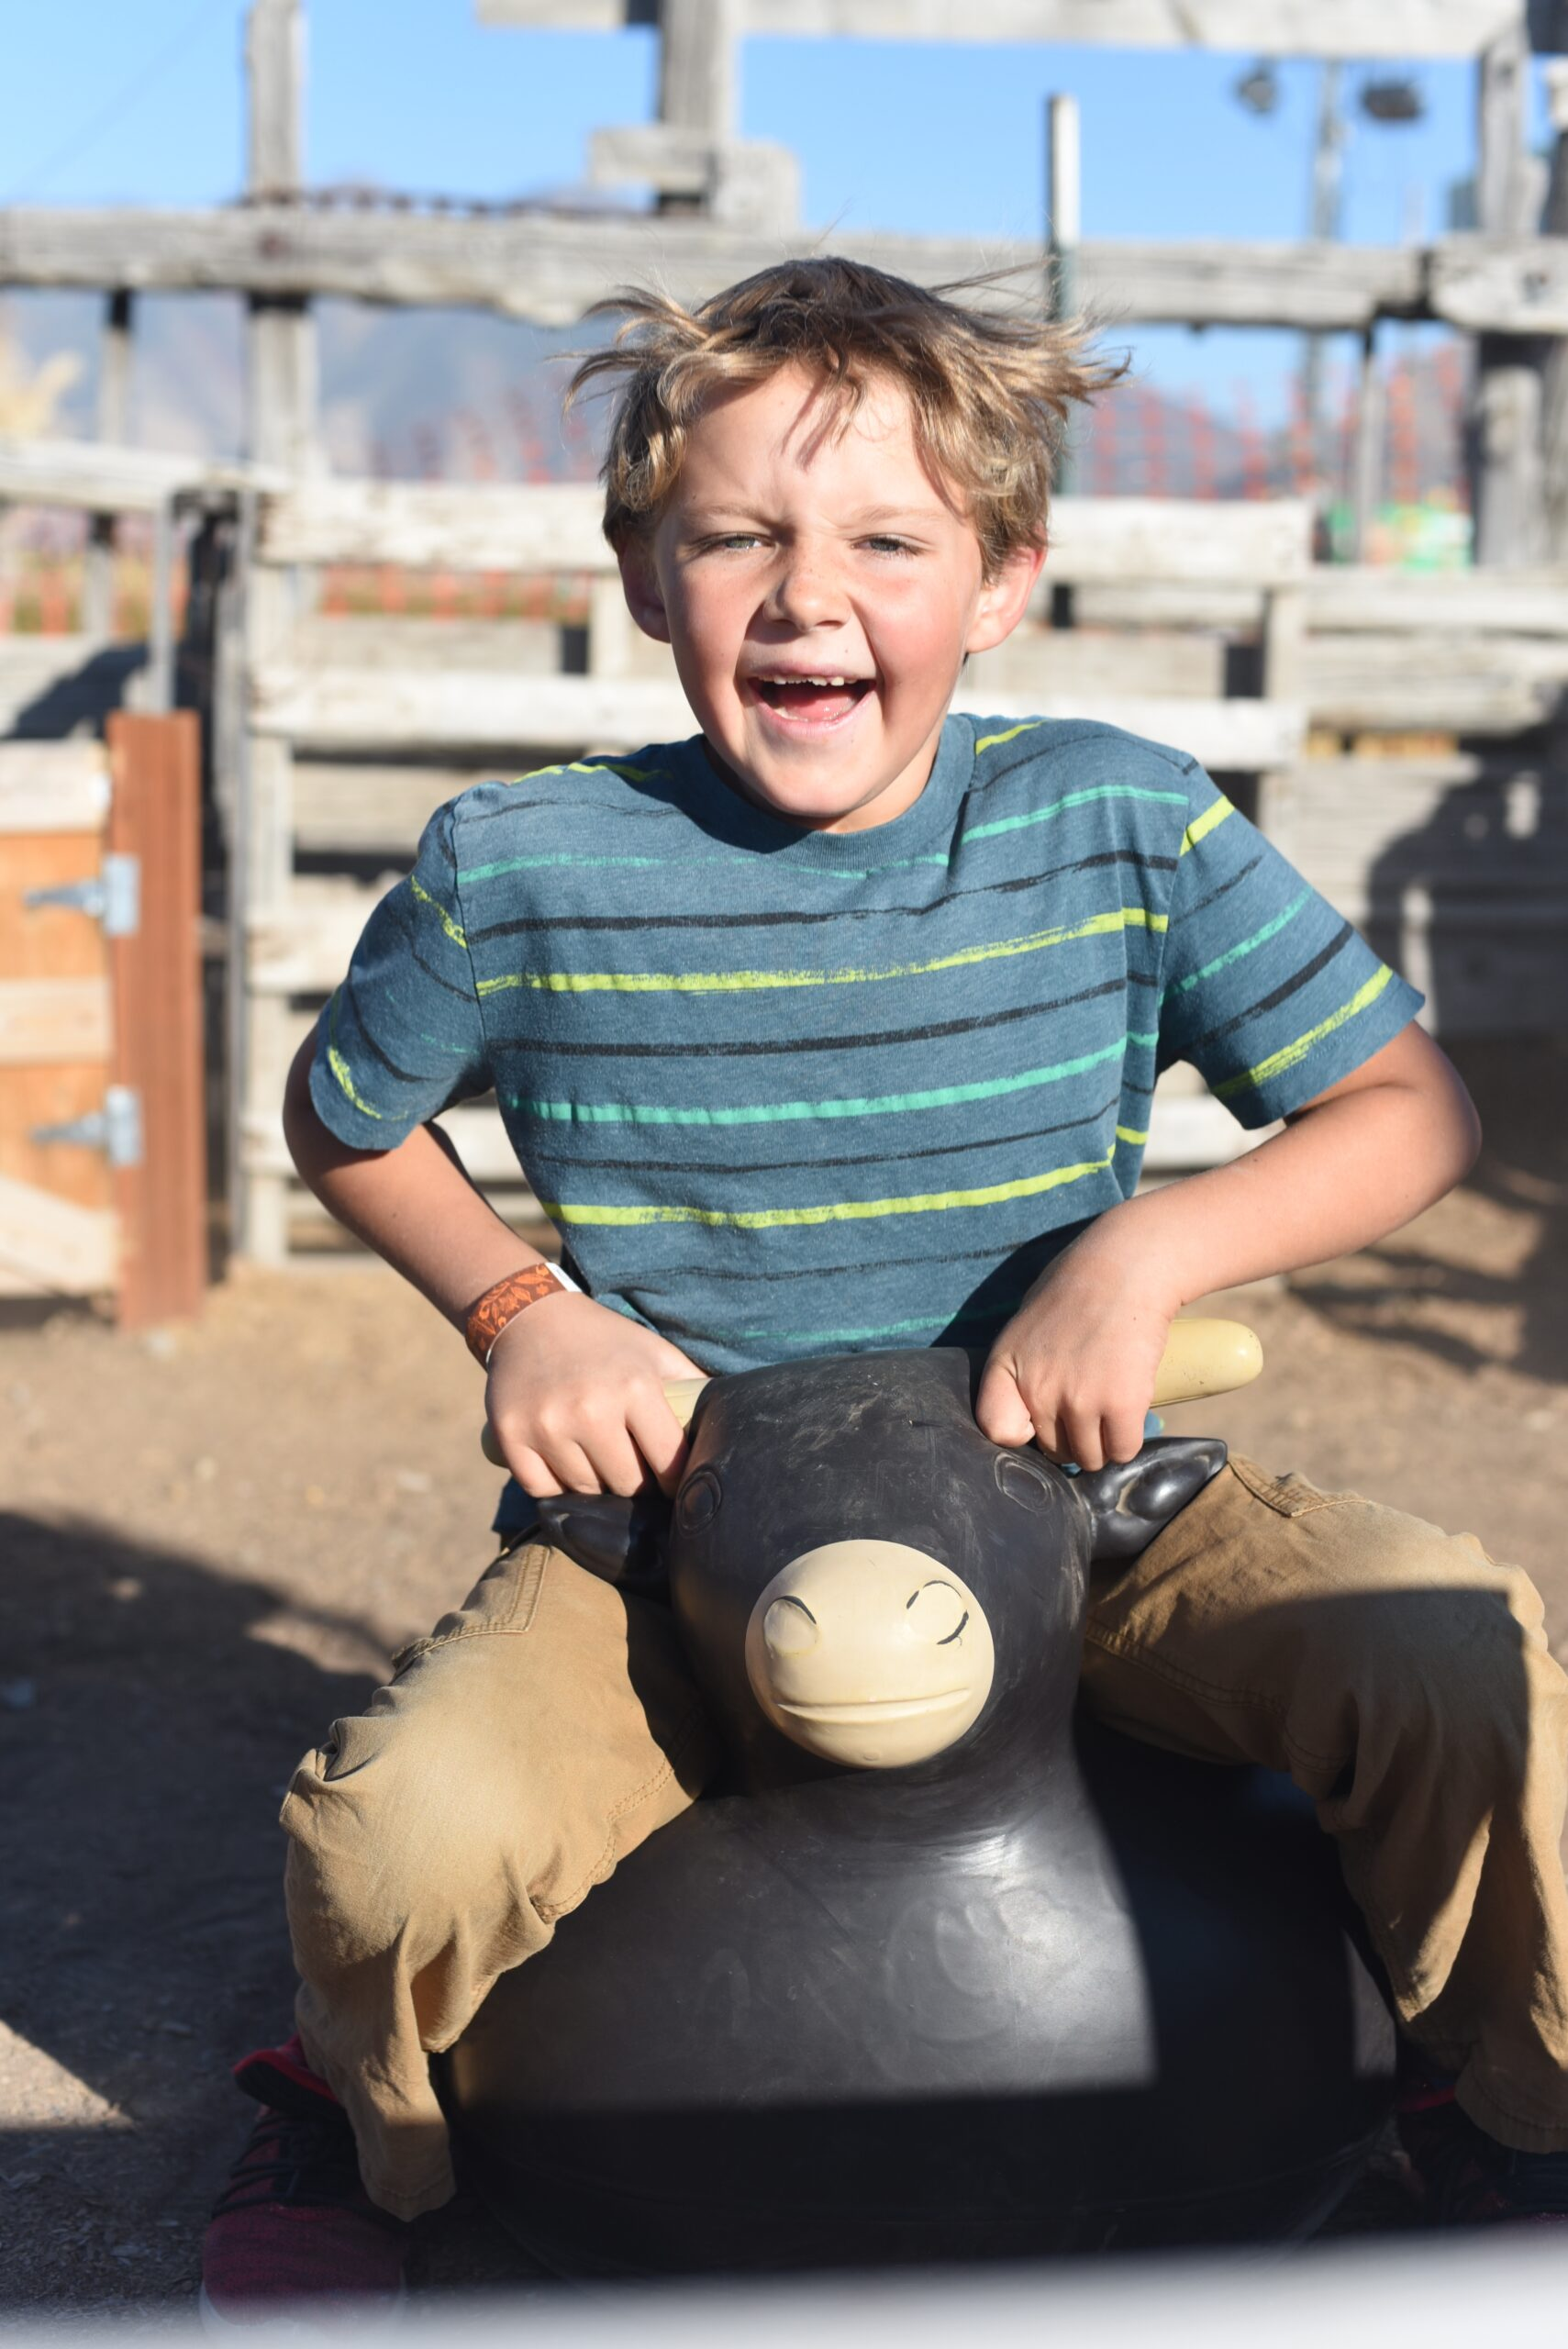 Boy bouncing on a blow up Bull in the Lil; Buckaroo Rodeo at Glen Ray's Corn Maze